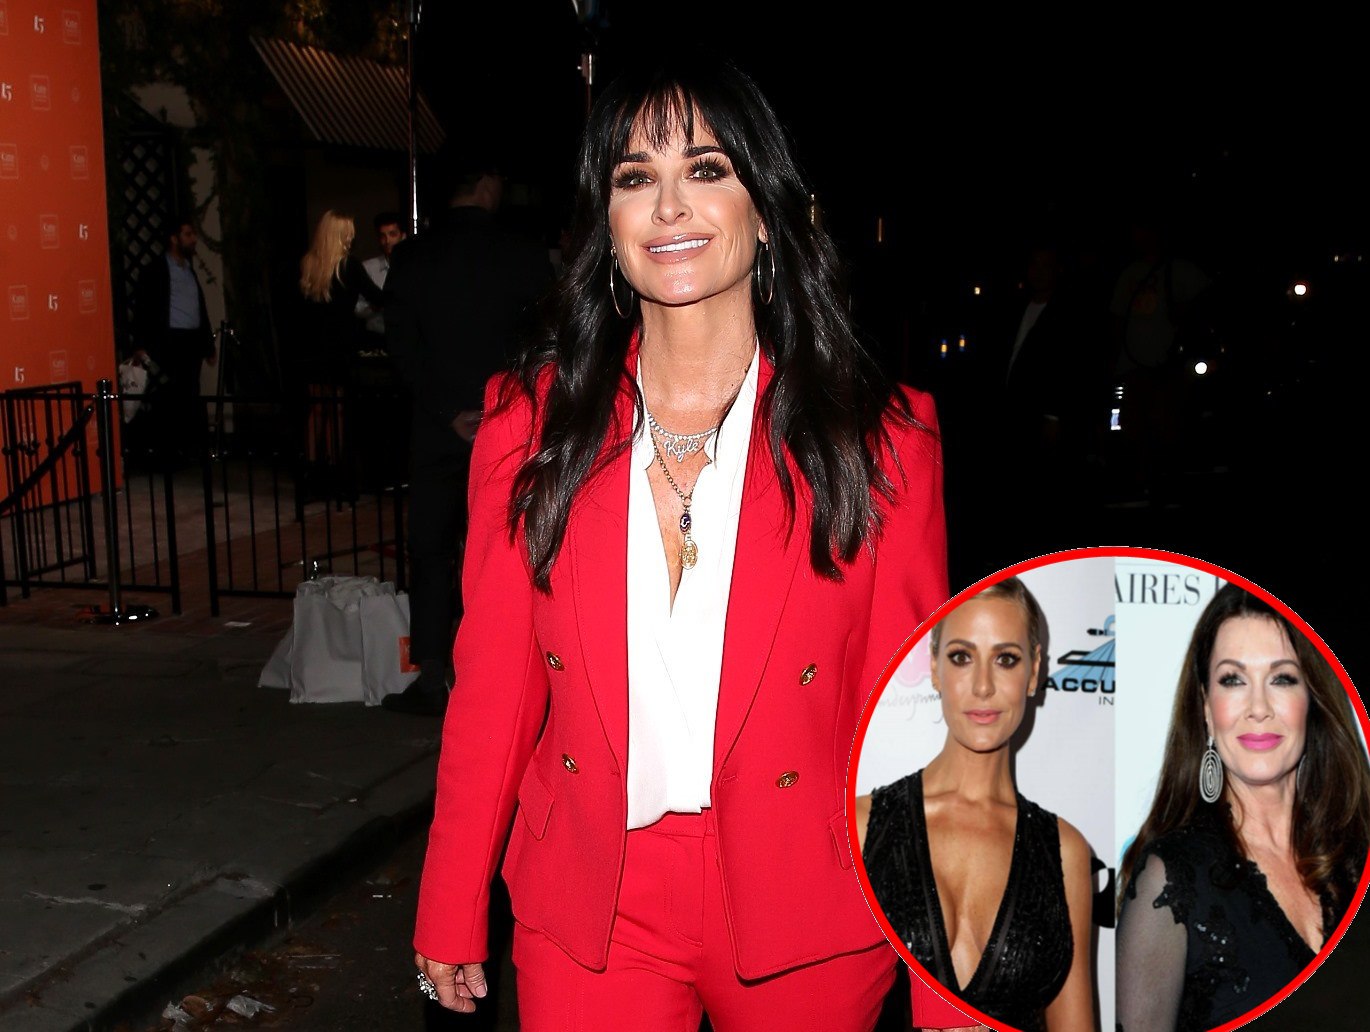 RHOBH's Kyle Richards Called Out by Fans For Sharing a Post About a Shelter Dog After Puppy Gate Drama